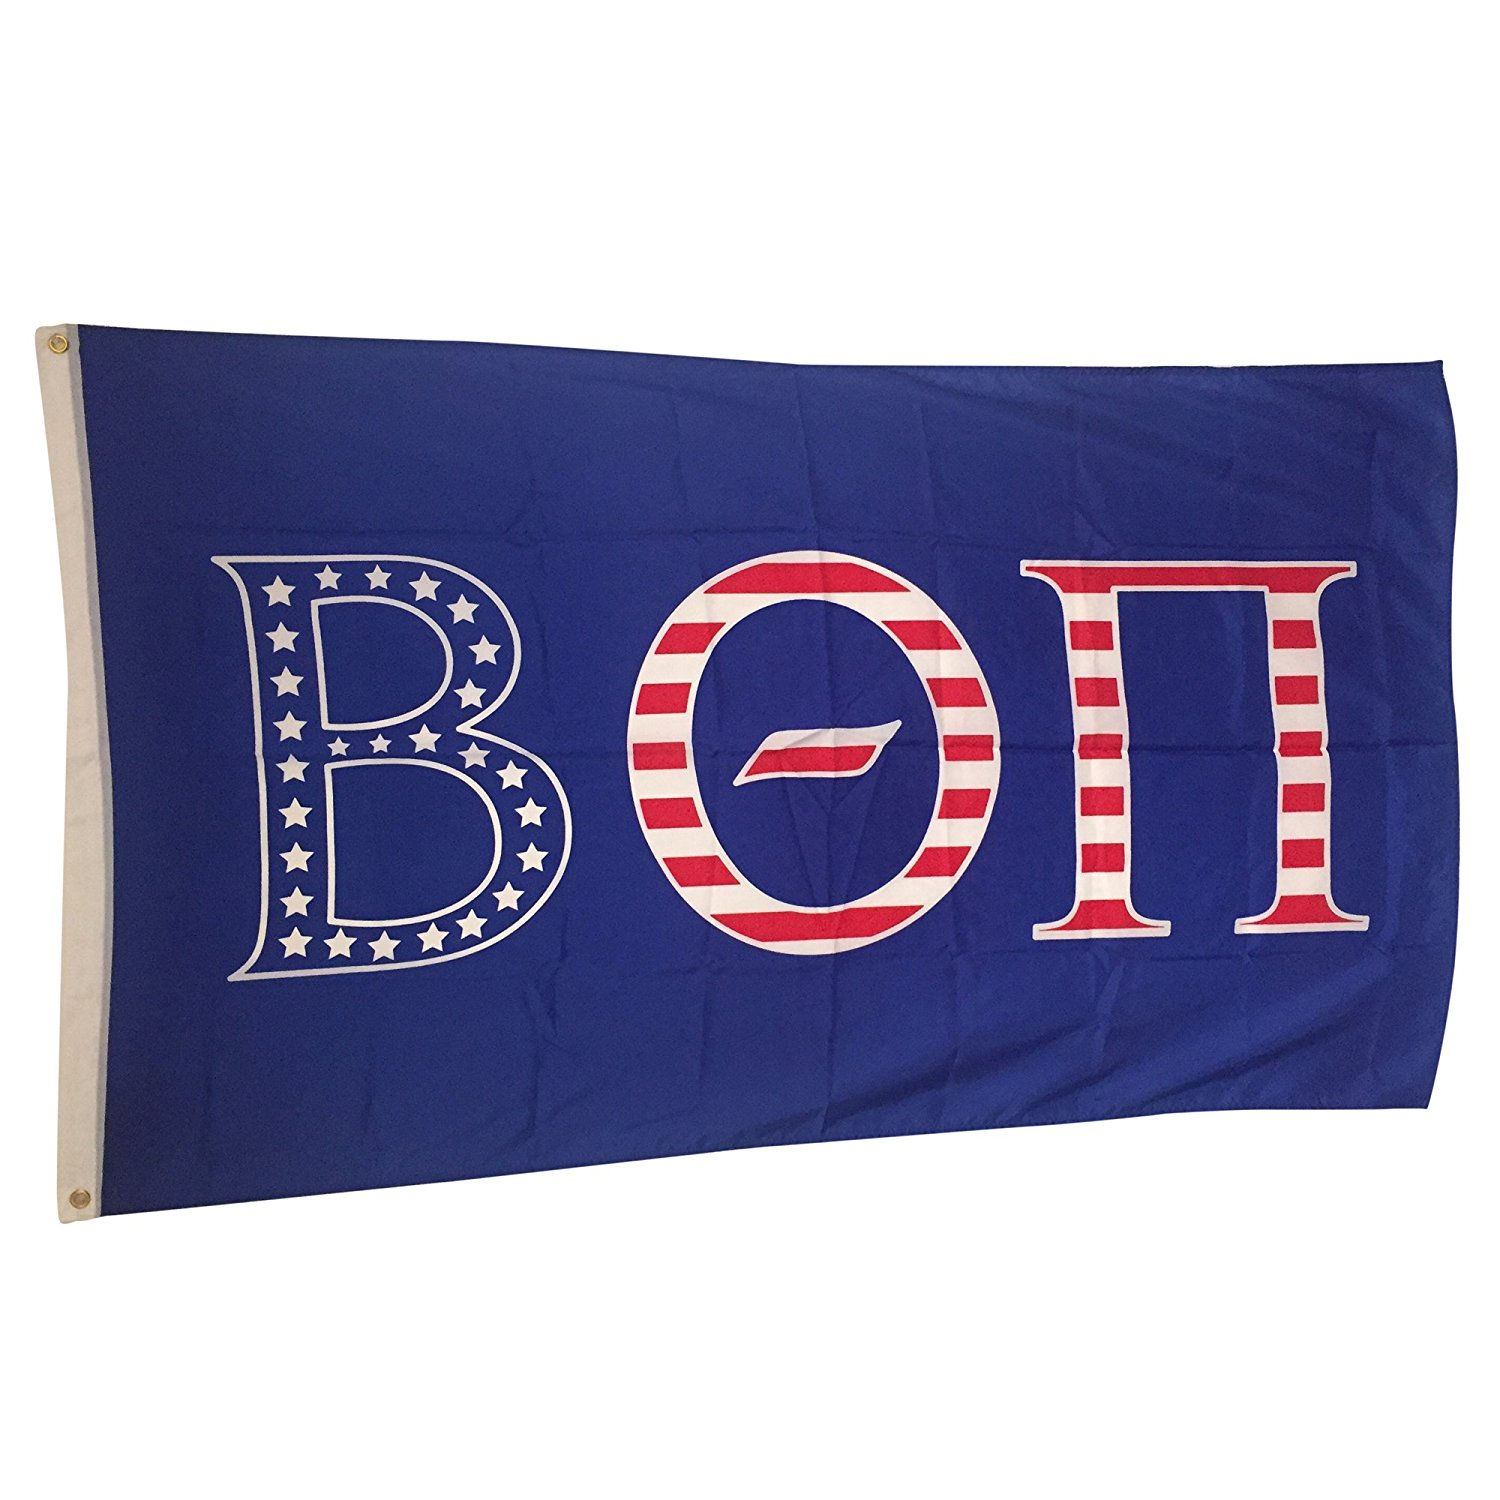 Beta Theta Pi USA Letter Fraternity Flag Greek Letter Use as a Banner Large 3 x 5 Feet Officially Licensed Flags and Decor